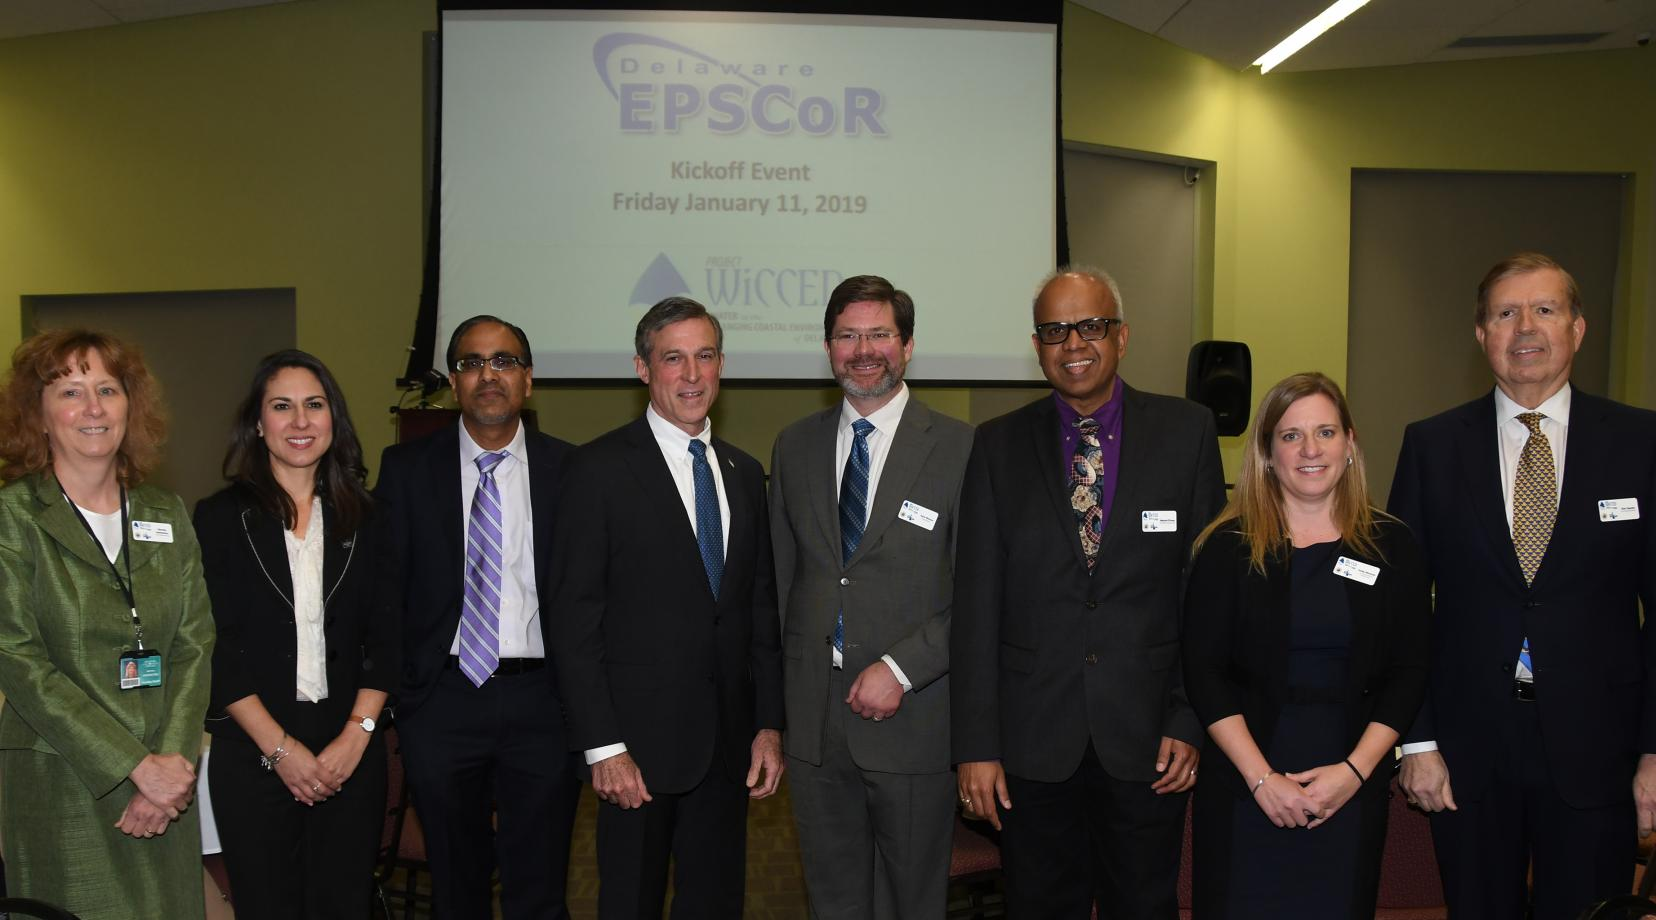 <p>Delaware EPSCoR leadership: (L-r) Martha Hofstetter, DTCC Institutional Lead; Justina Sapna, DTCC VP for Academic Affairs; Venu Kalavacharla, DSU Institutional Lead and Co-PI; Gov. John Carney; Kent Messer, Project Director, and PI; Malcolm D'Souza, Wesley Institutional Lead, and Co-PI; Holly Michael, Research Lead and Co-PI; Donald Sparks, Delaware EPSCoR Director, and Co-PI.</p>